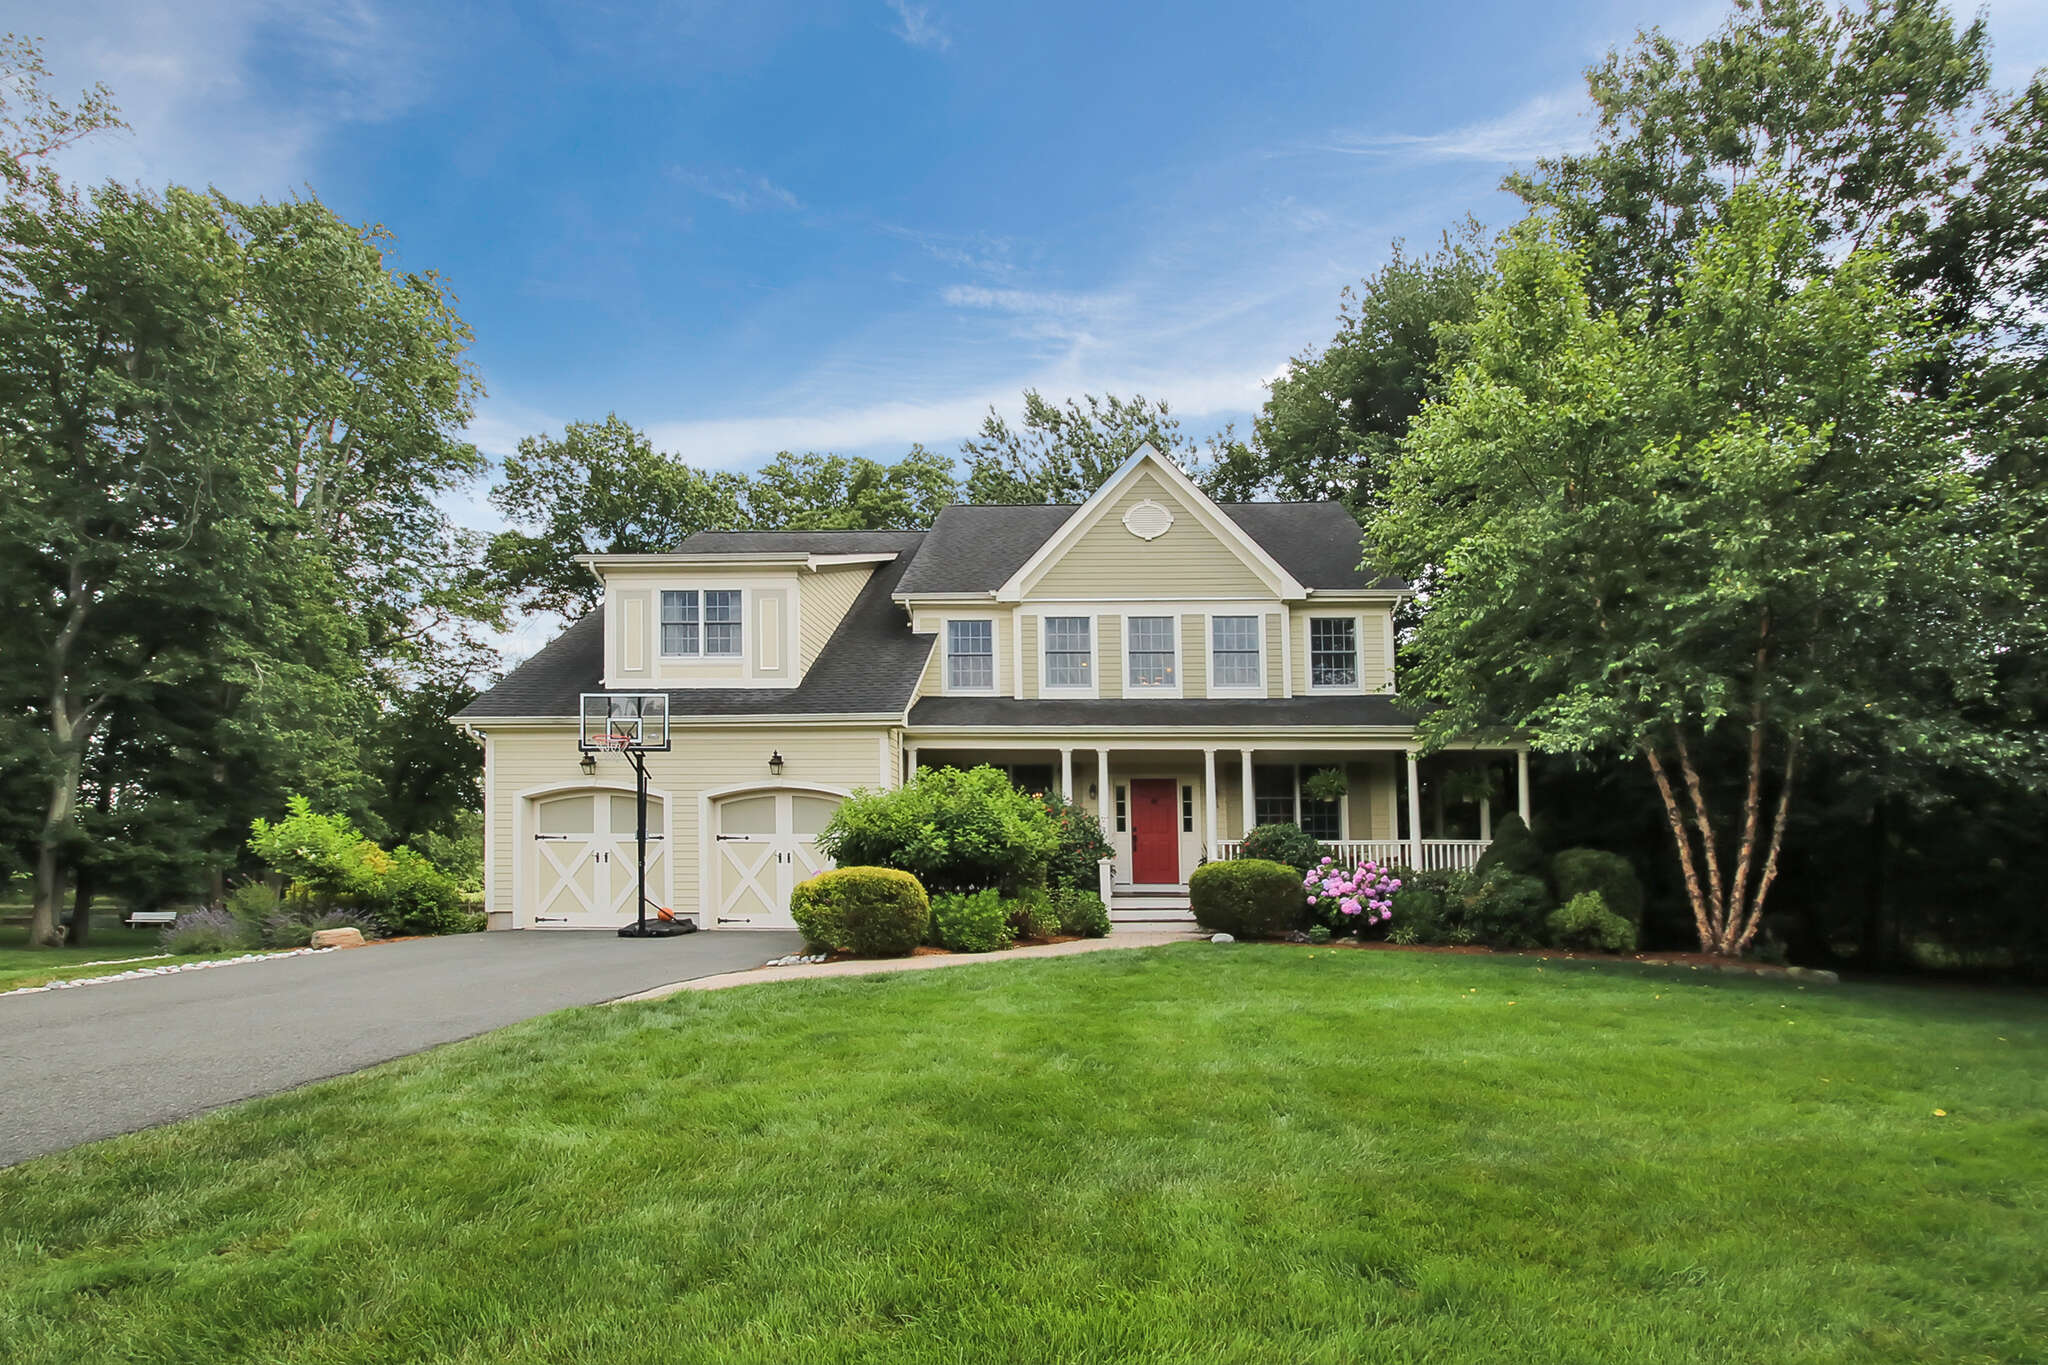 Single Family for Sale at 1656 Cooper Road Scotch Plains, New Jersey 07076 United States